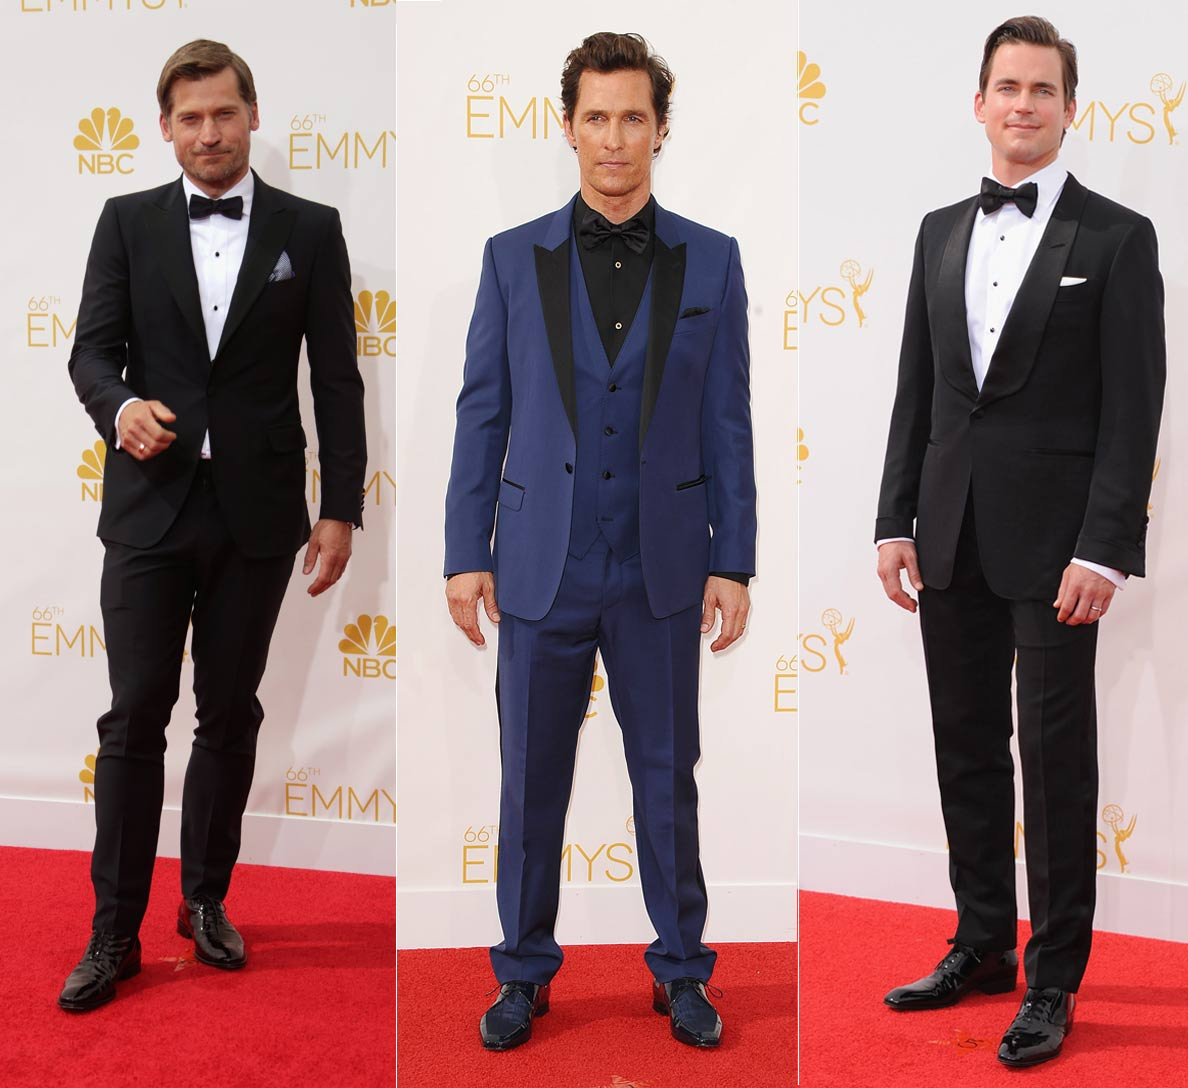 The 10 best dressed at the Emmy awards